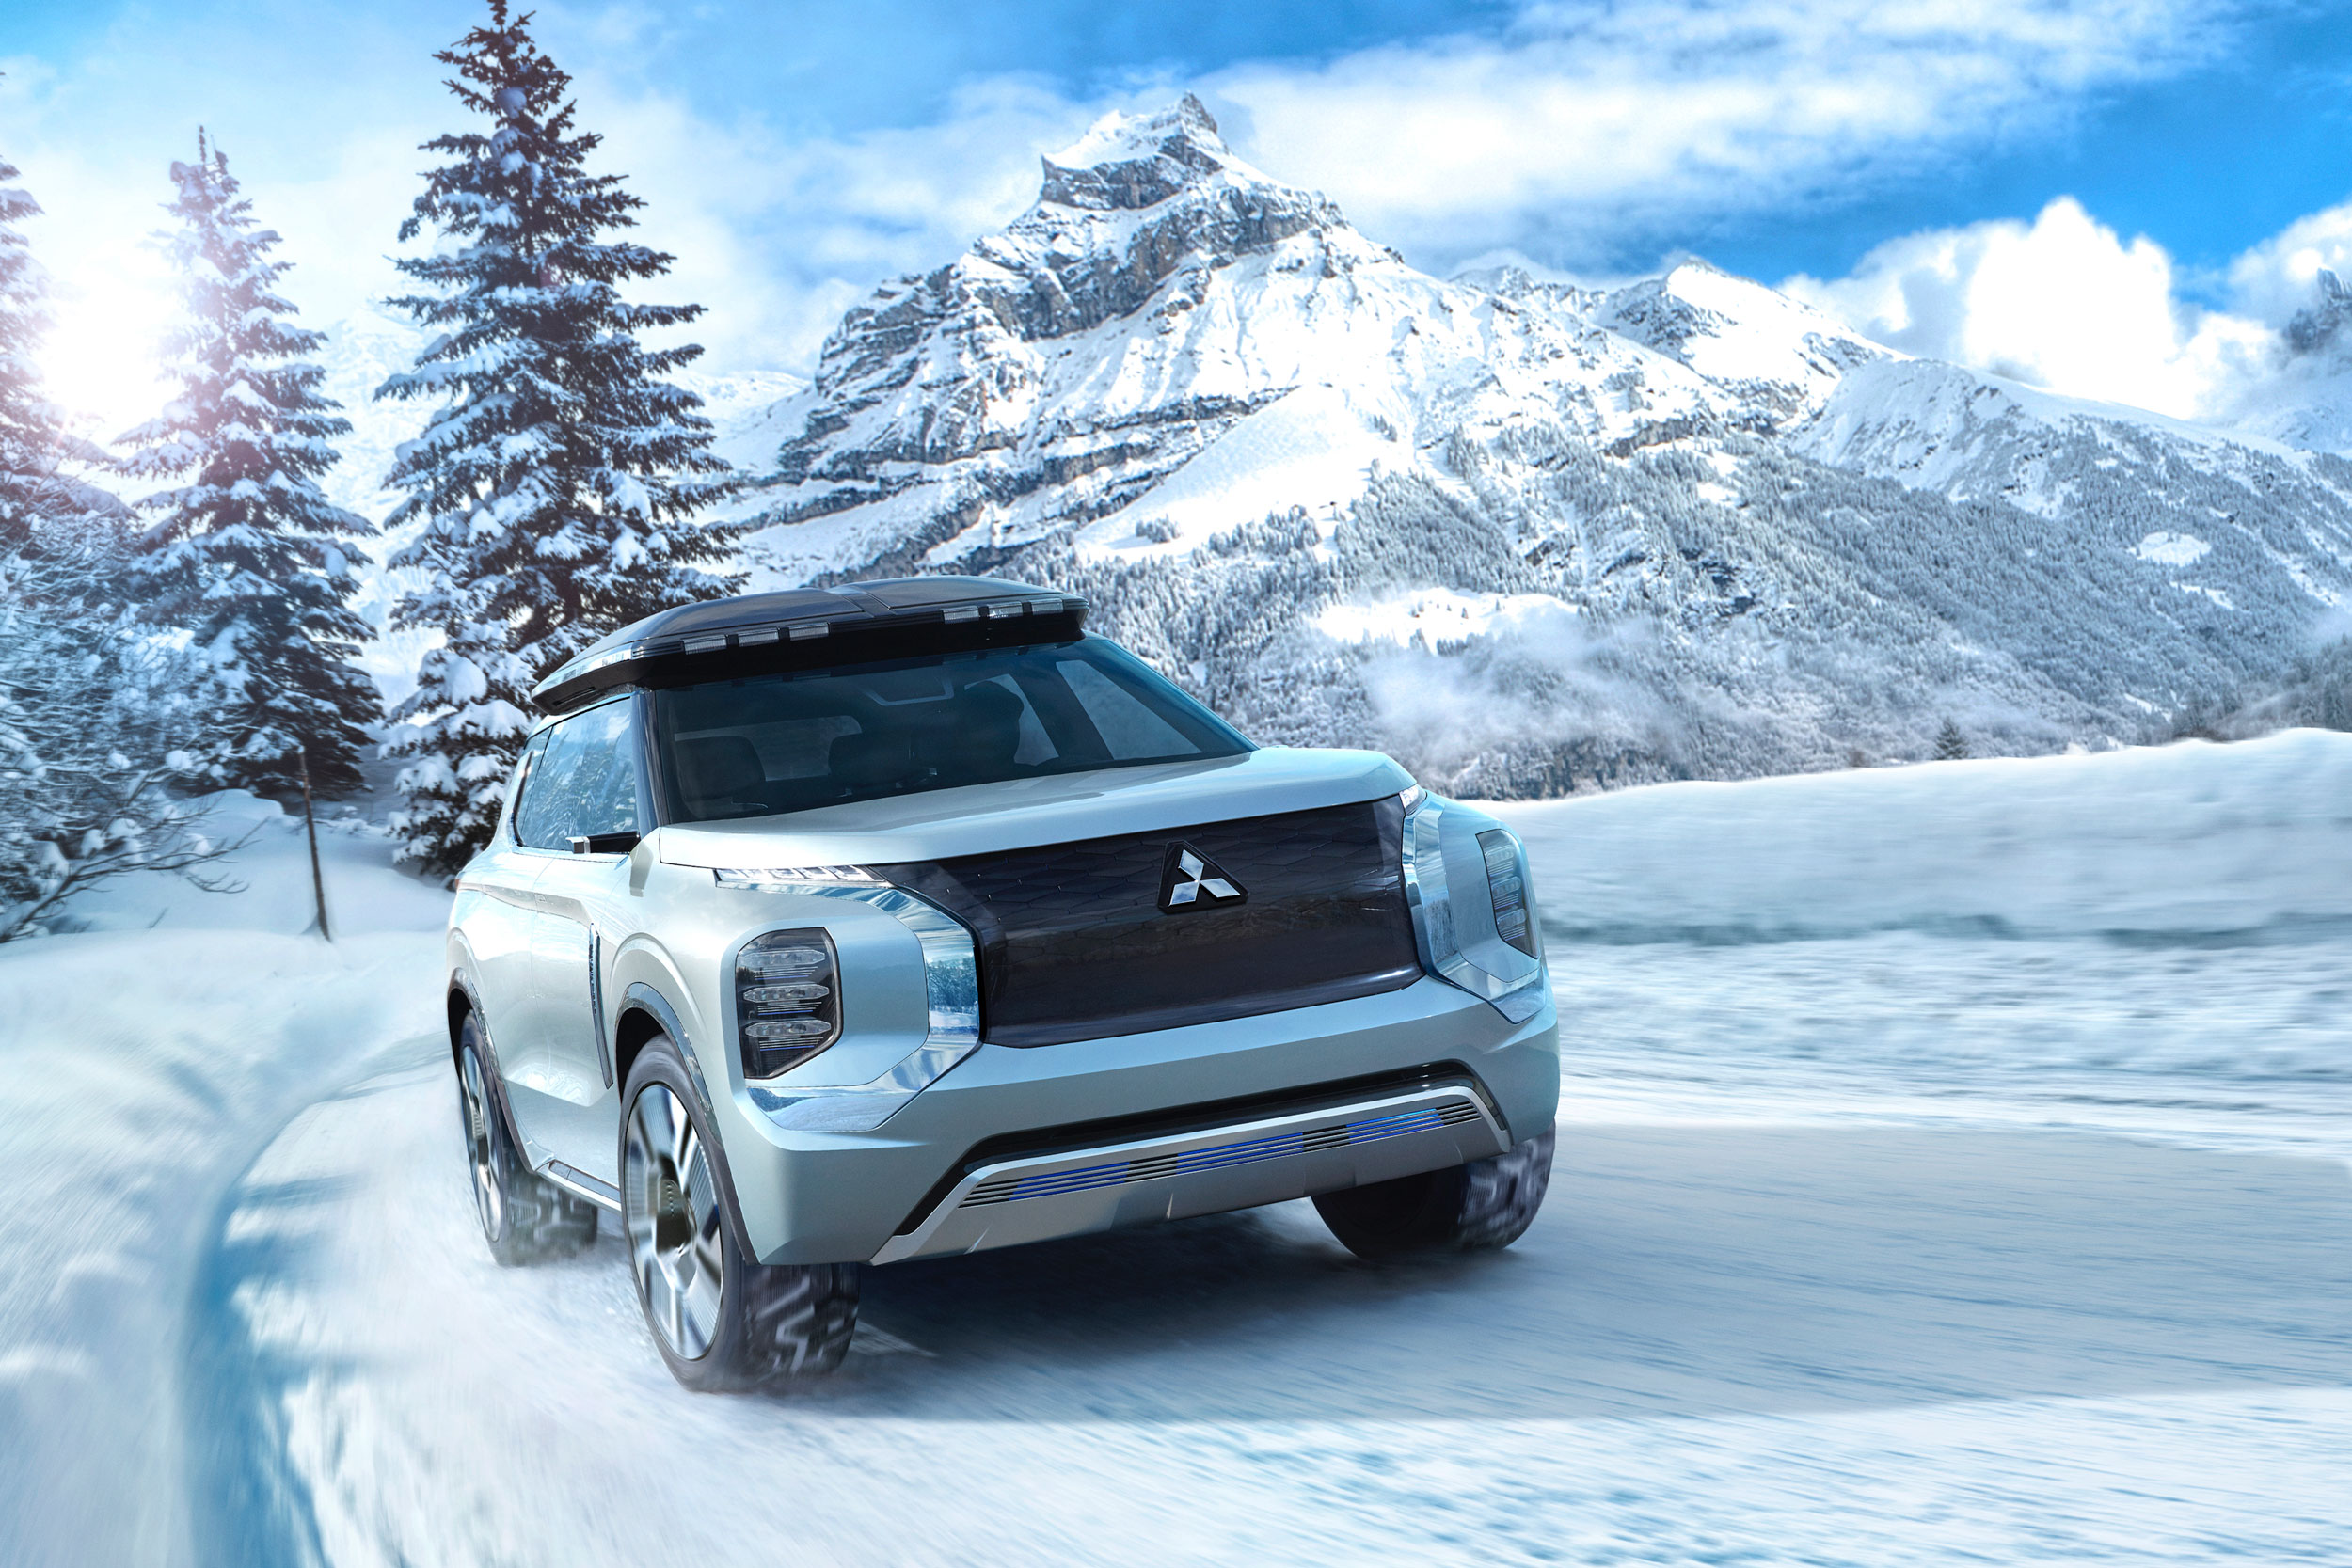 Mitsubishi Engleberg Tourer concept hybrid SUV winter driving mountains